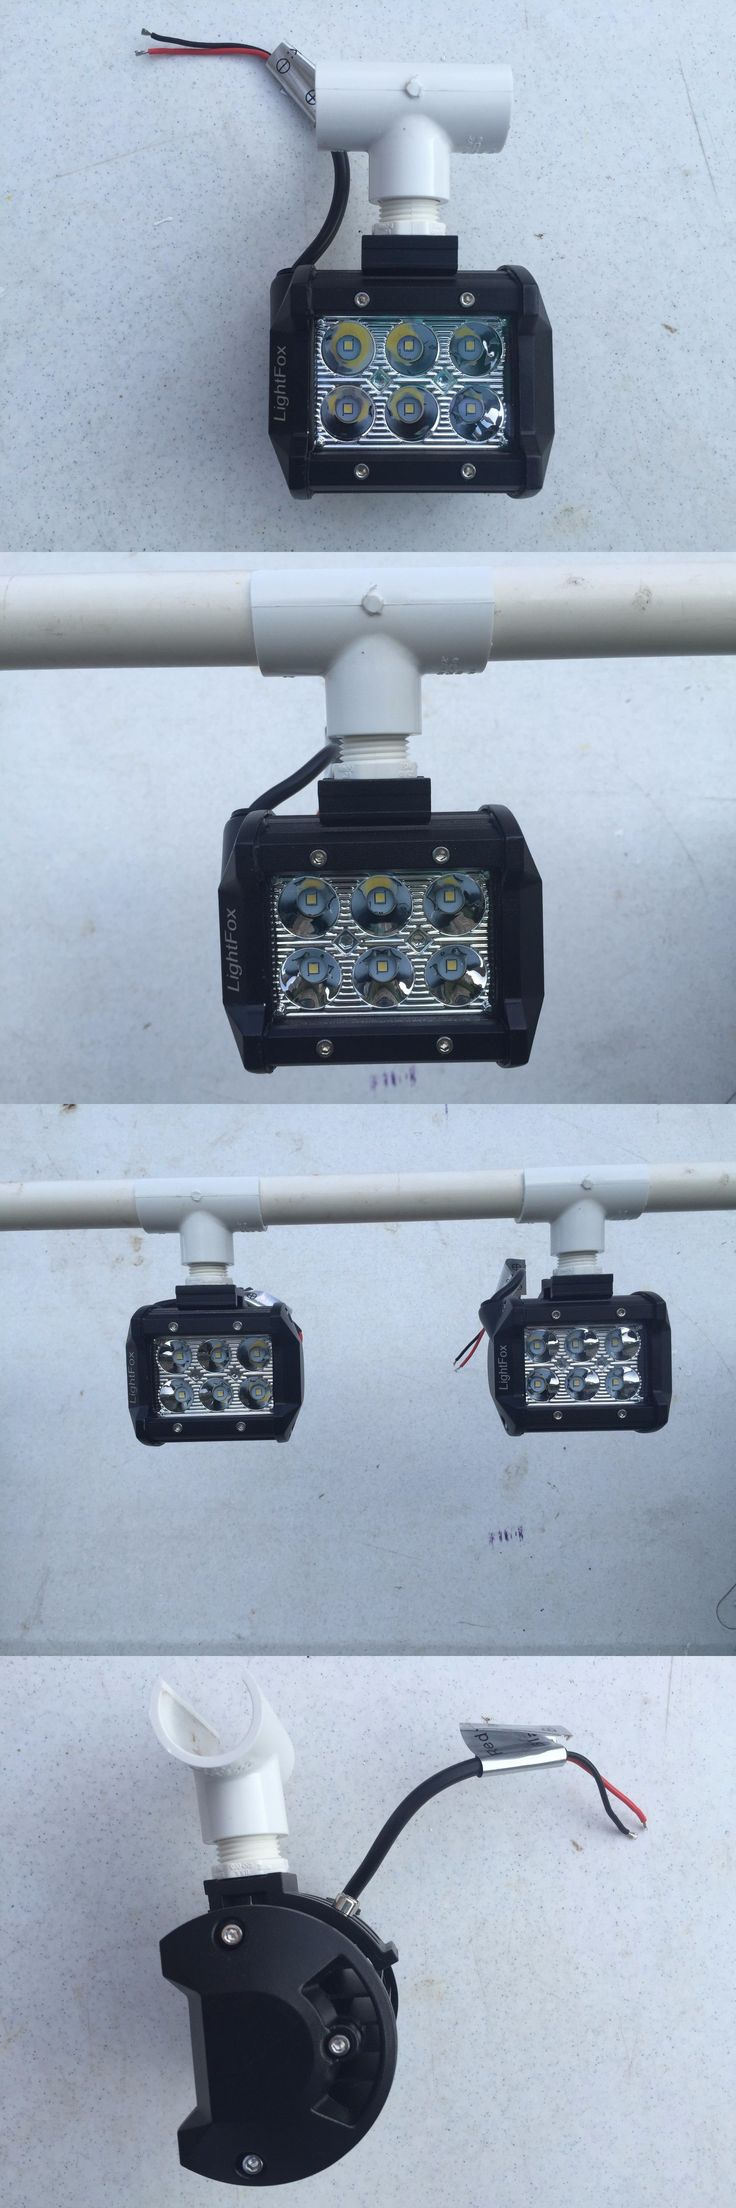 Lights 123489: Boat Light Waterproof Pvc Snap Head Led 18 Watts 1800 Lumens 12 Volt (Fishing) -> BUY IT NOW ONLY: $42.99 on eBay!